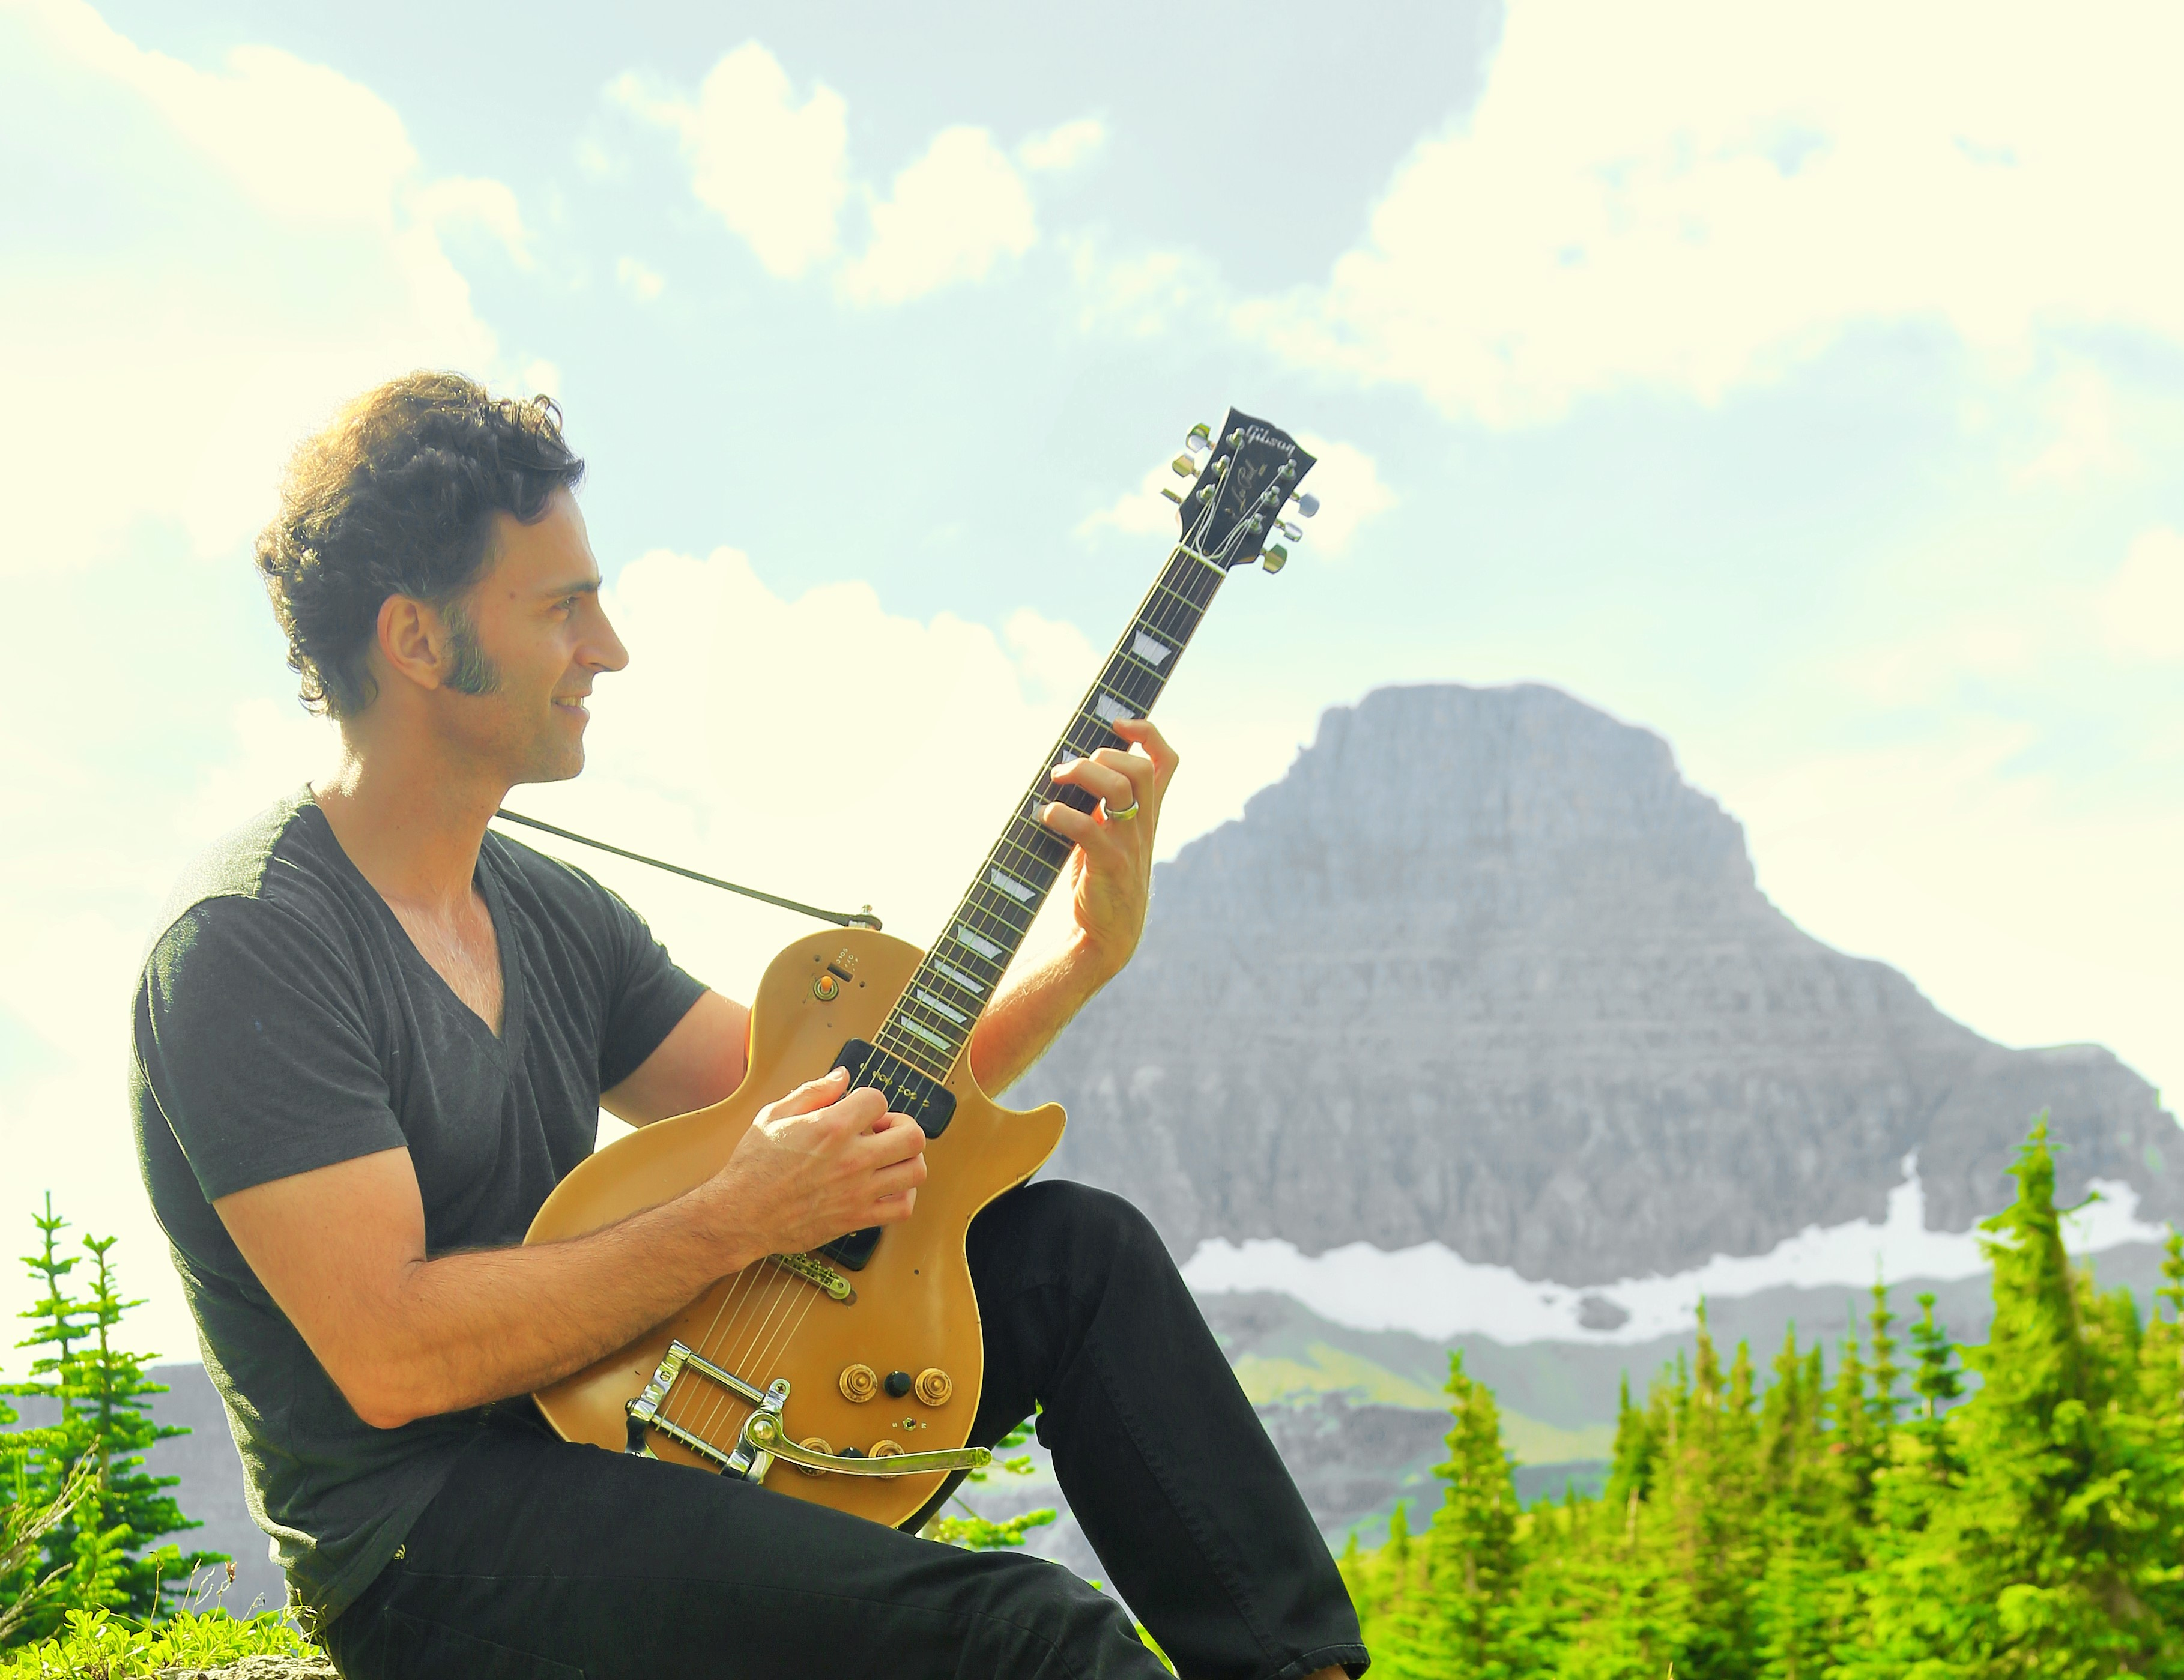 Dweezil Zappa playing a guitar out in nature